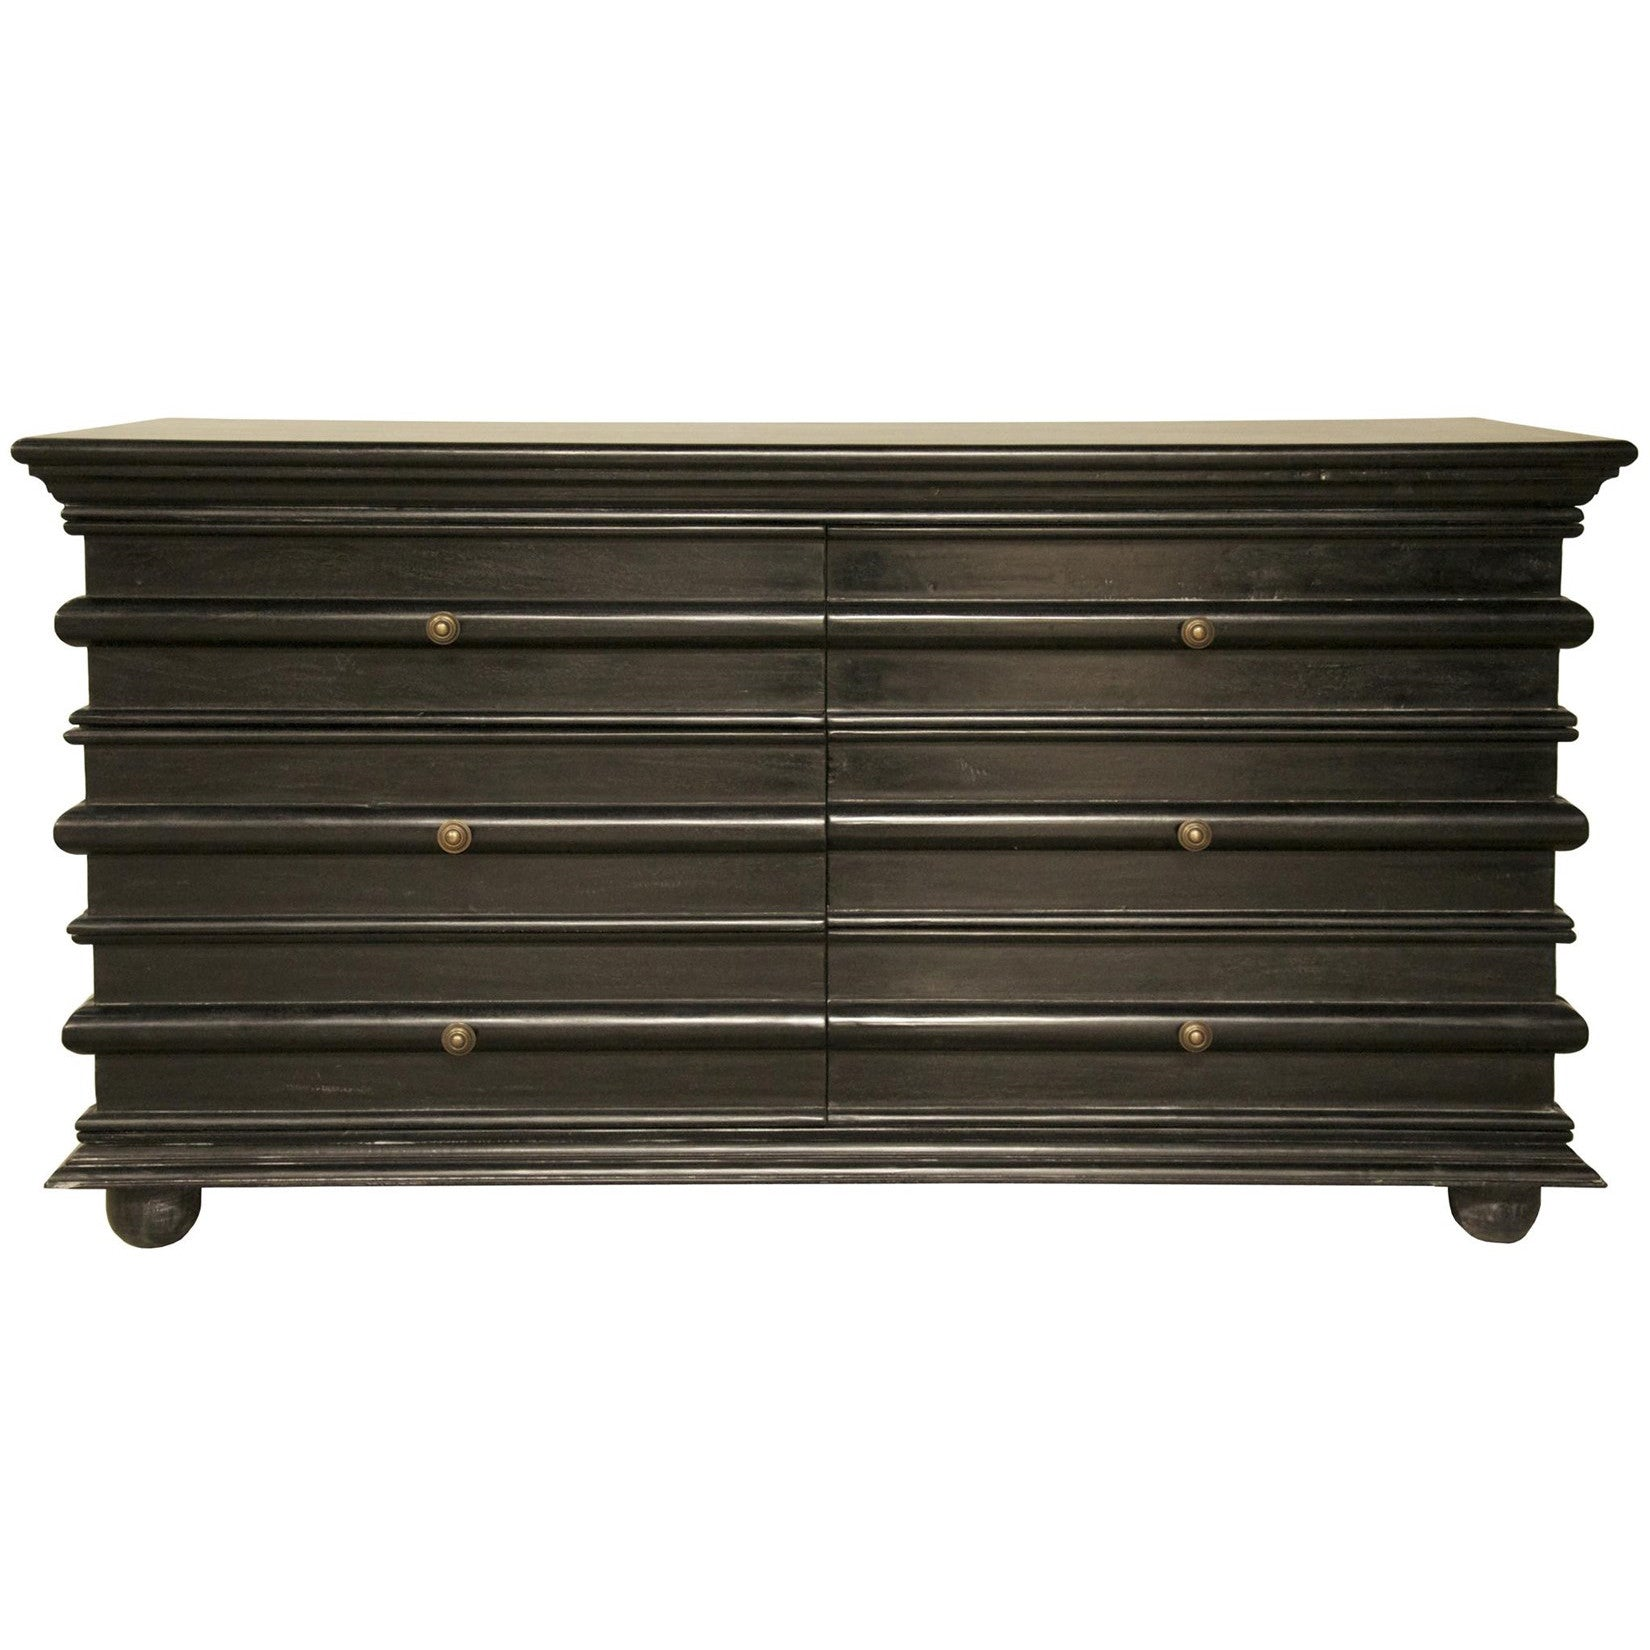 Noir - Ascona Chest, Hand Rubbed Black